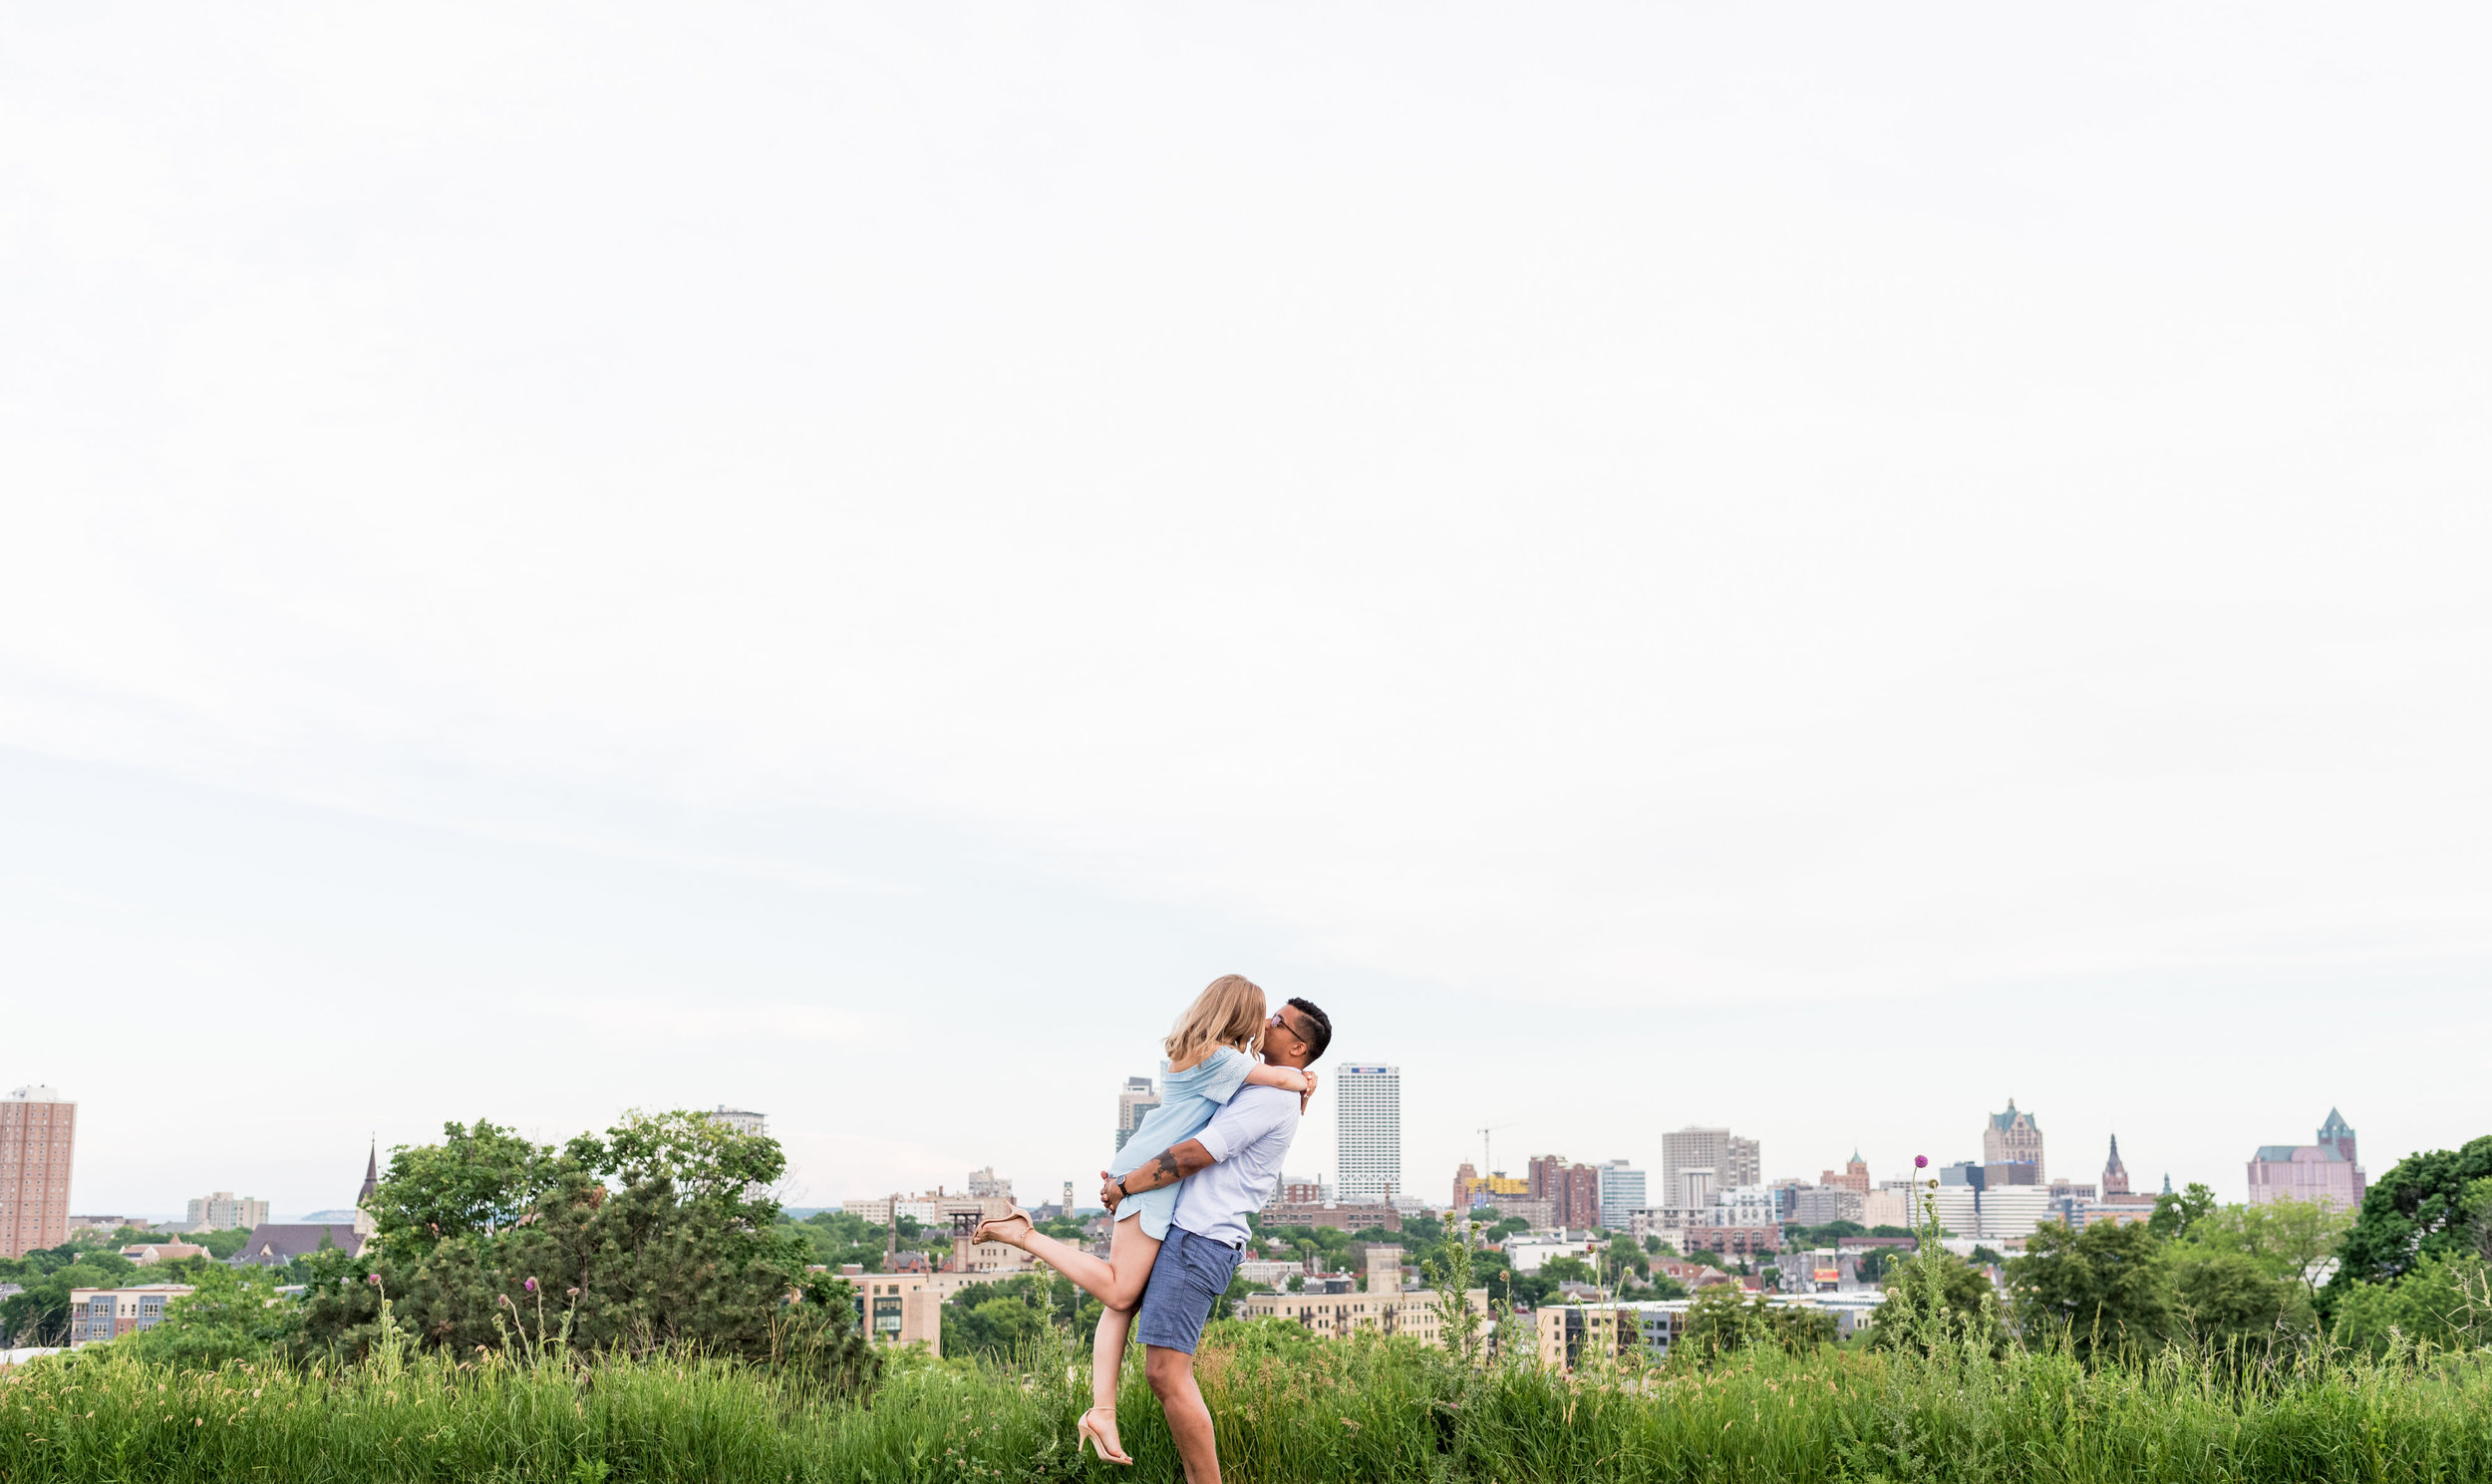 Christina and Baba Engagement Session-Christina baba Engagement June17-0073.jpg